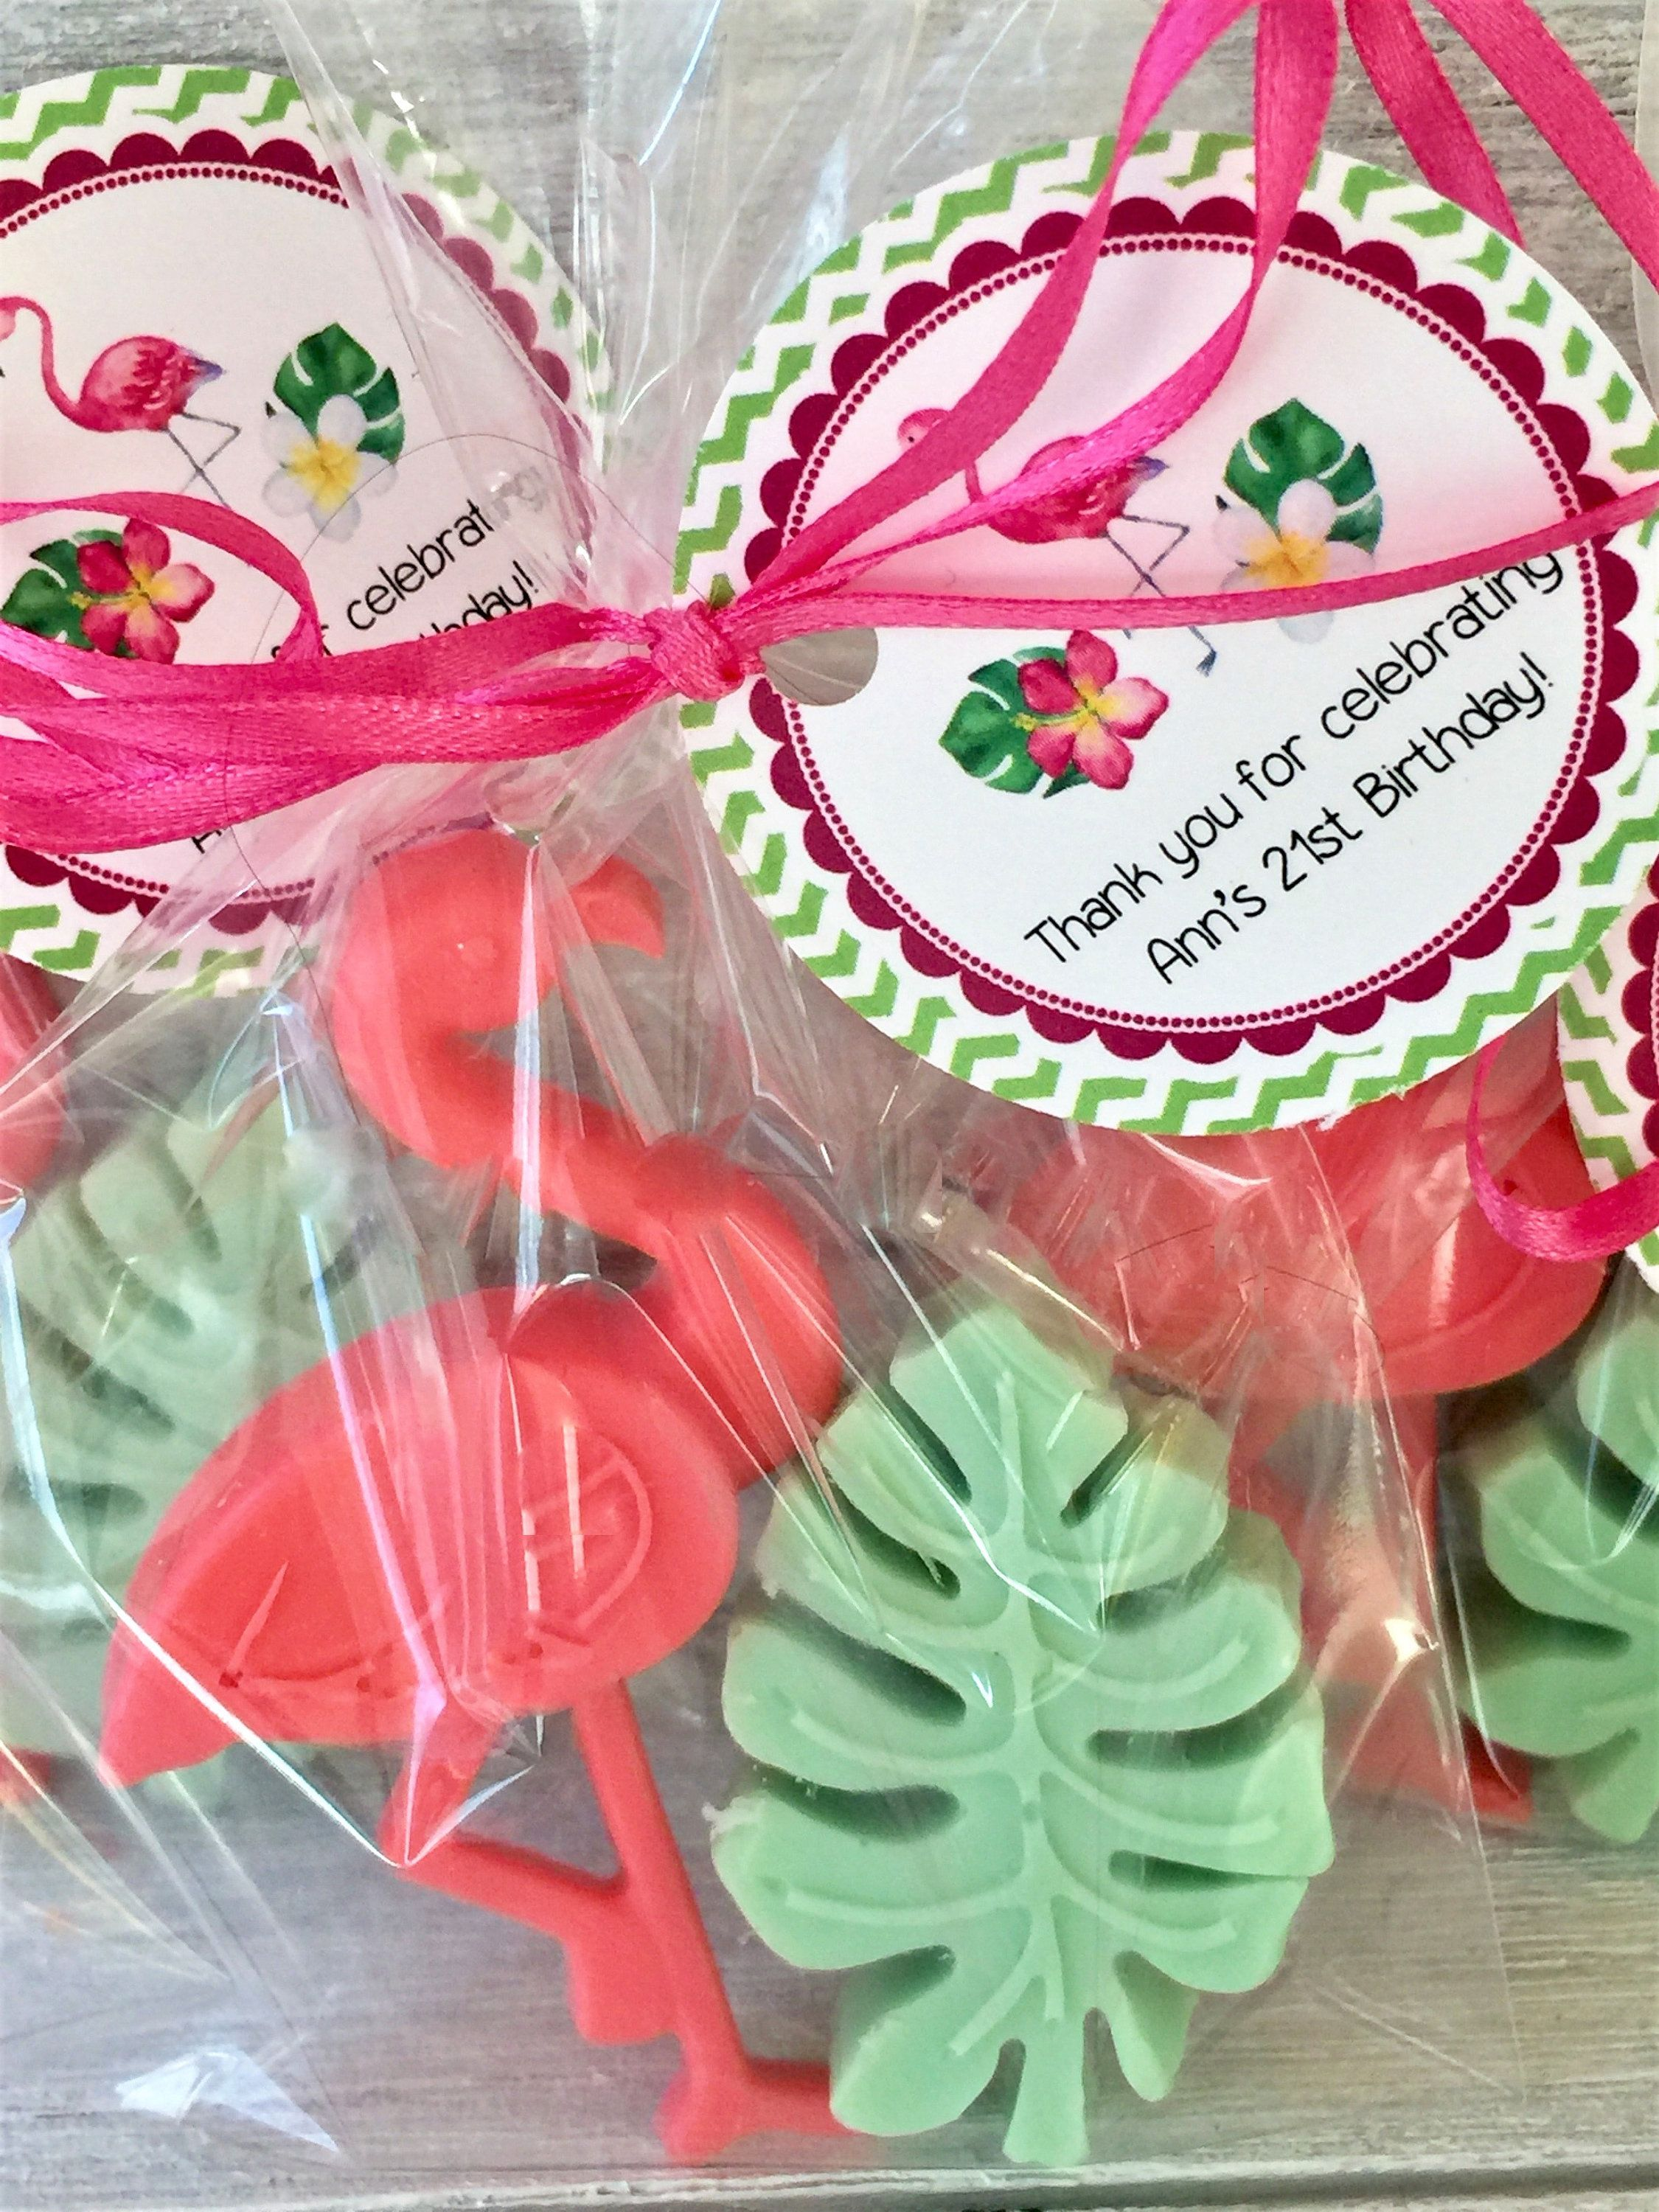 15 Flamingo Soap Party Favors: Wedding Favors, Destination wedding ...